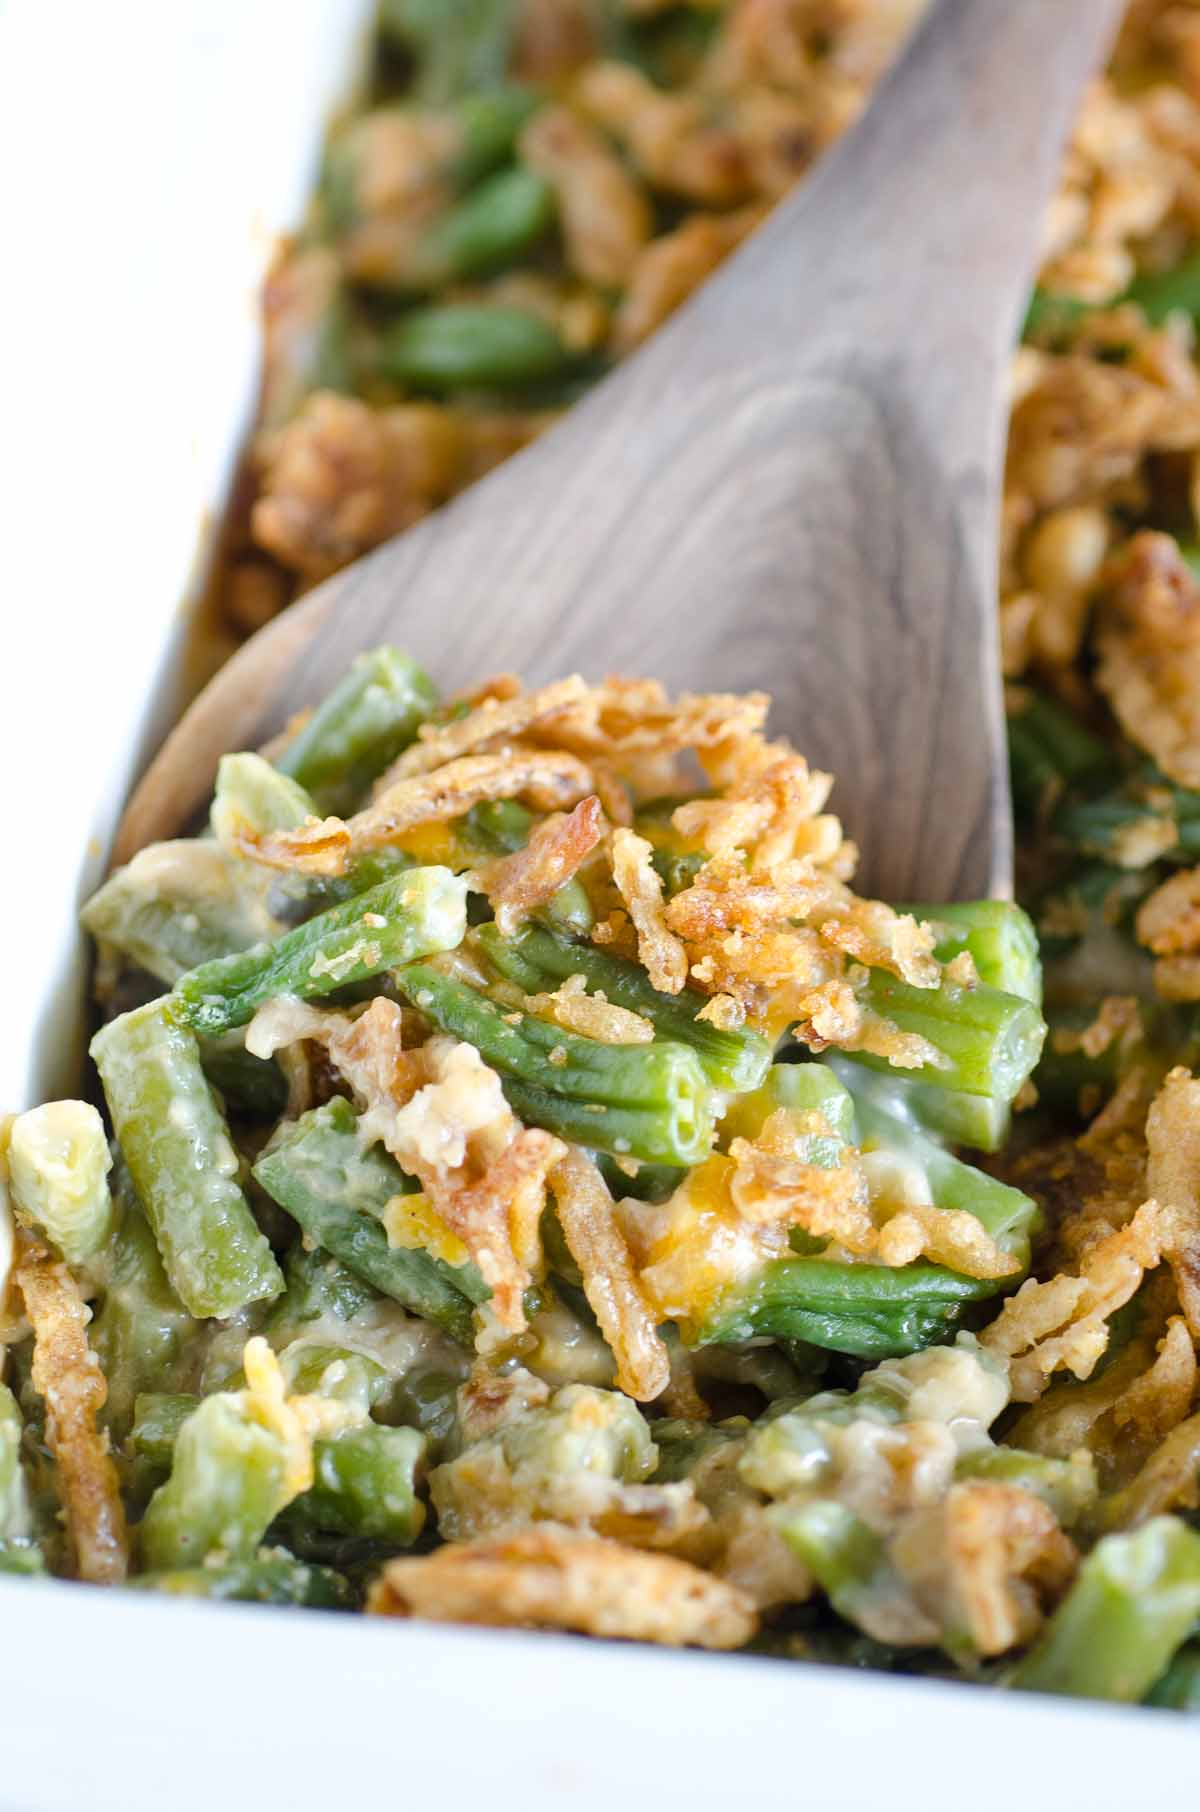 a wooden spoon scooping green bean casserole from pan